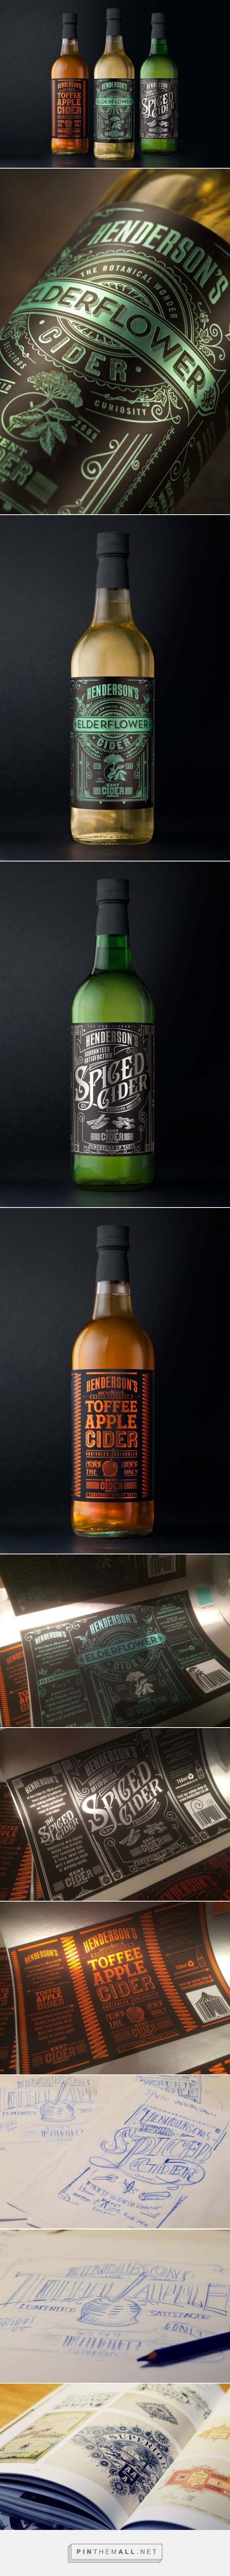 Henderson's #Cider #Packaging designed by Sand Creative - http://www.packagingoftheworld.com/2015/10/hendersons-cider-redesign.html